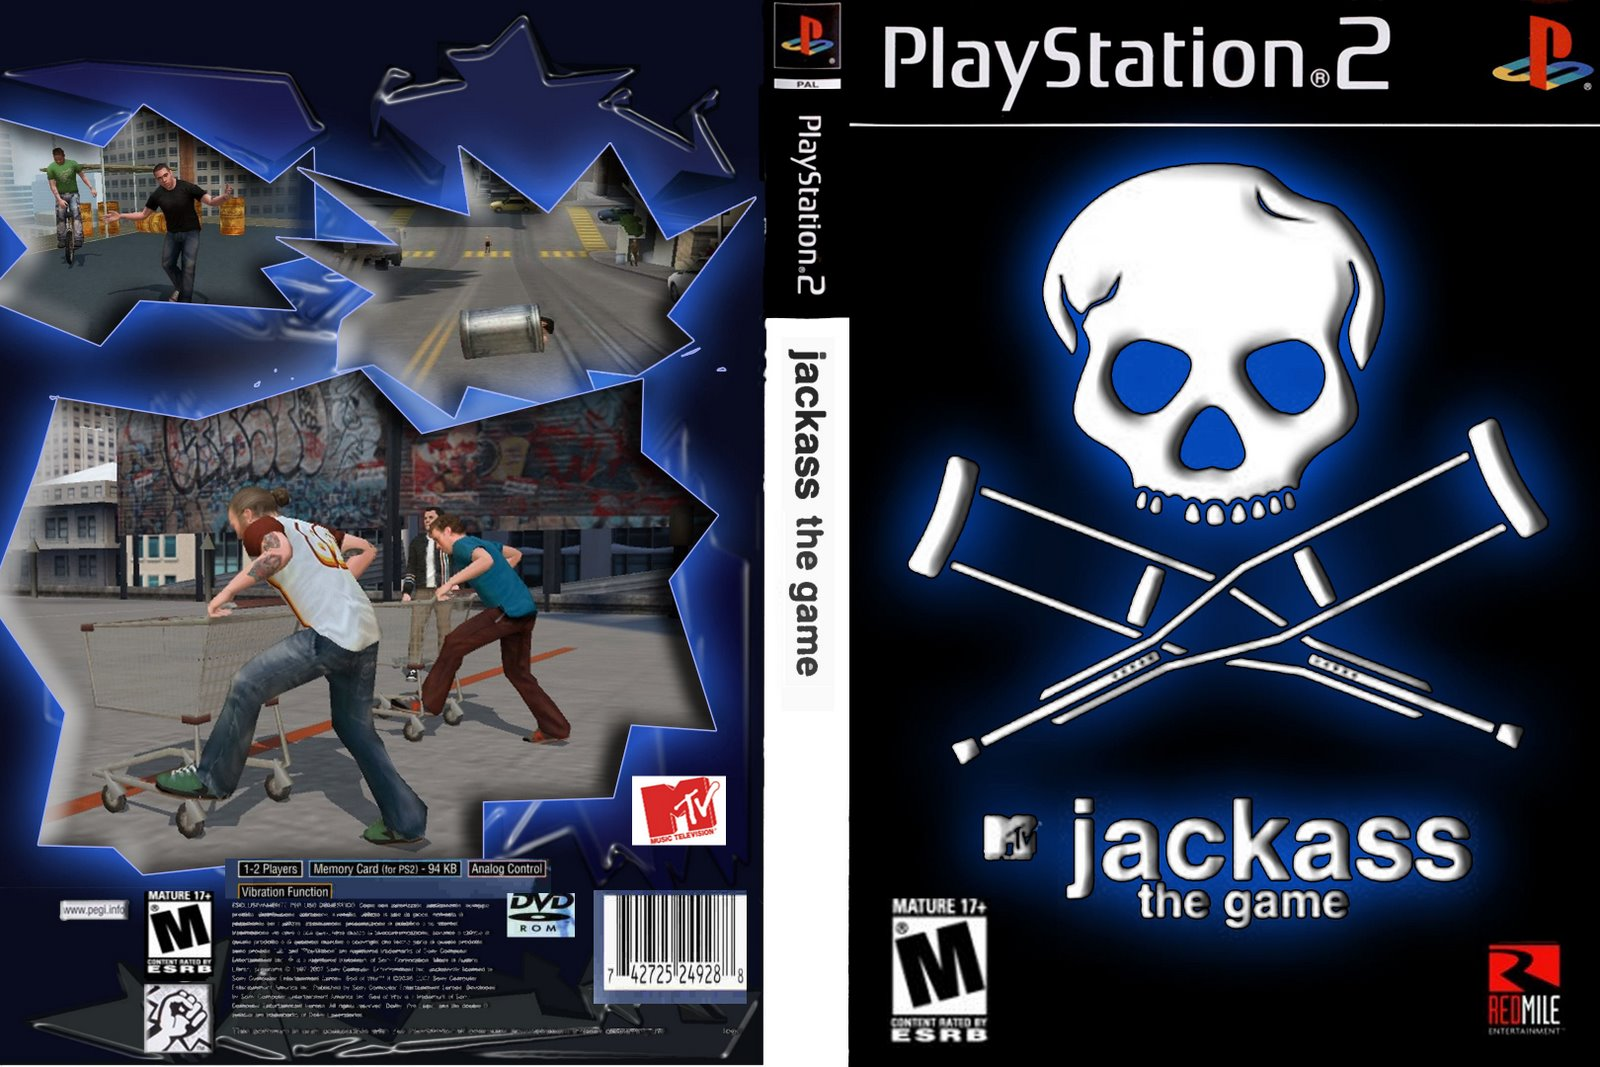 Jack Ass The Game 73